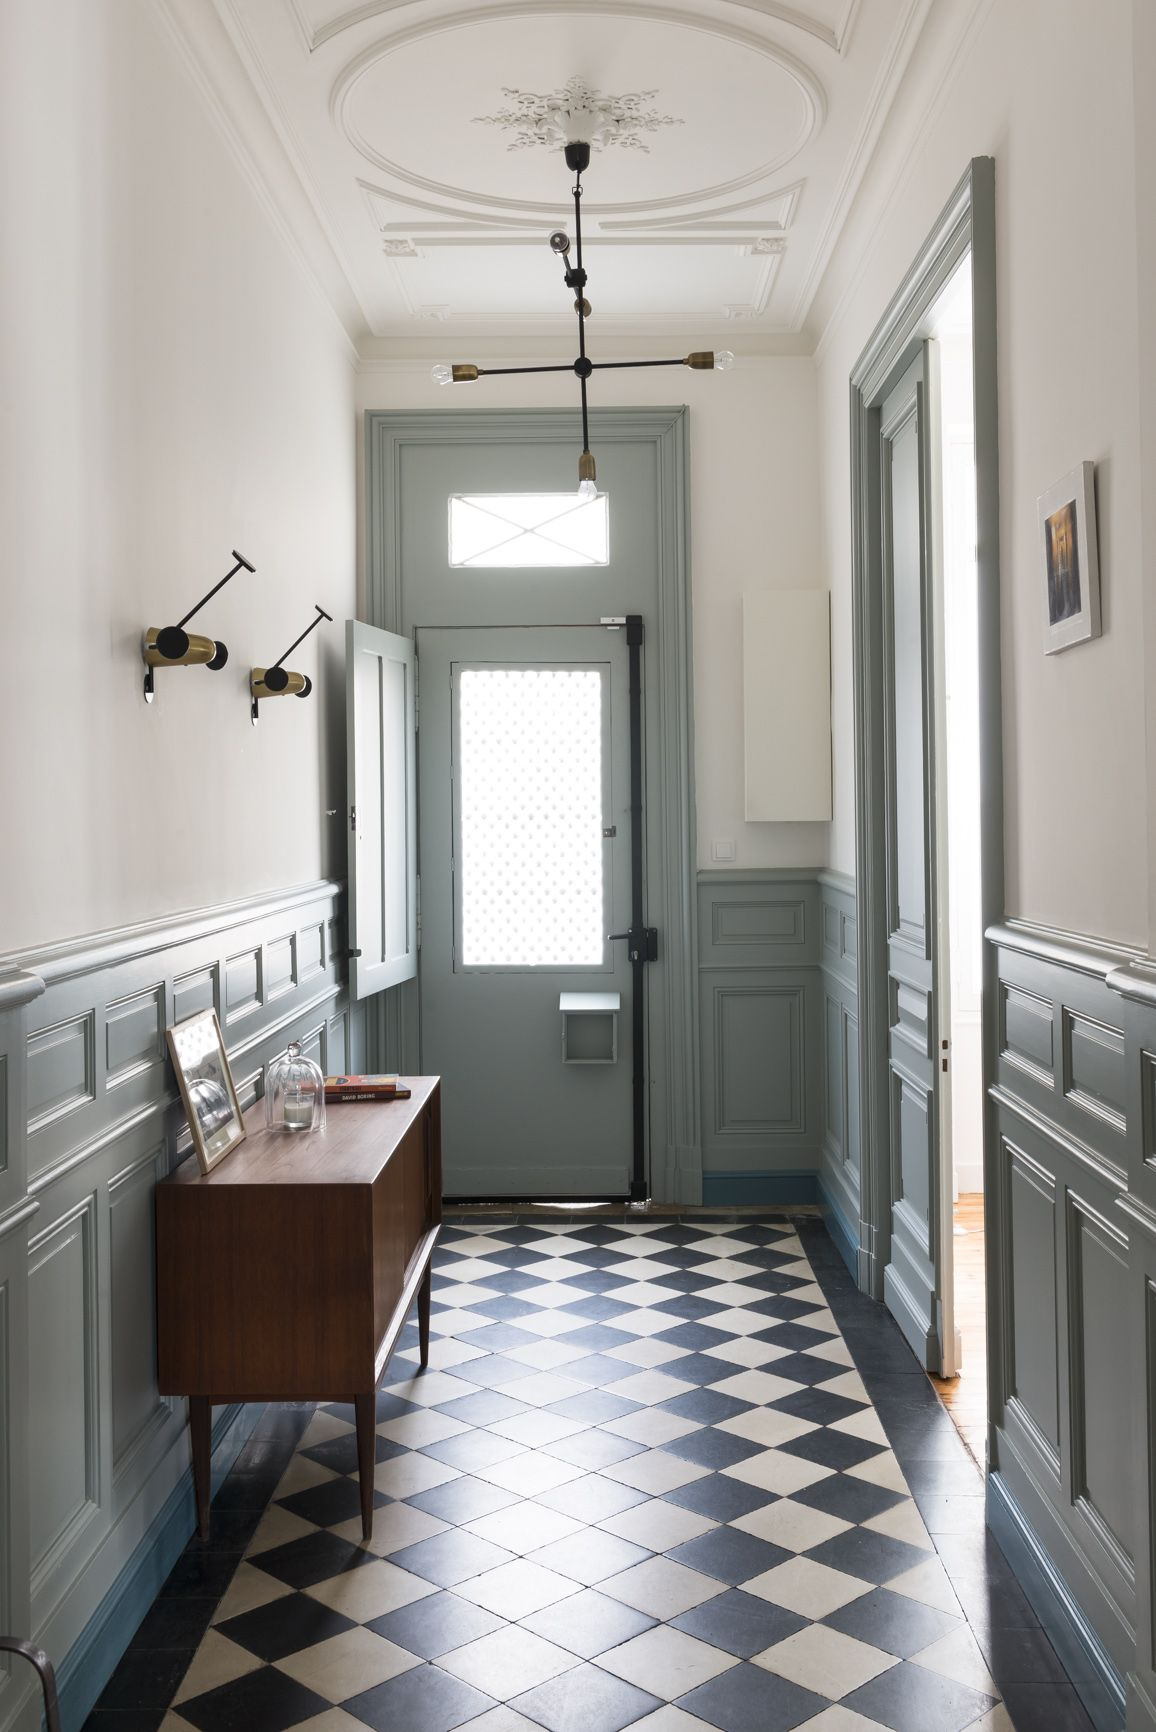 Best 25 maison bourgeoise ideas on pinterest boiseries for Photo couloir maison